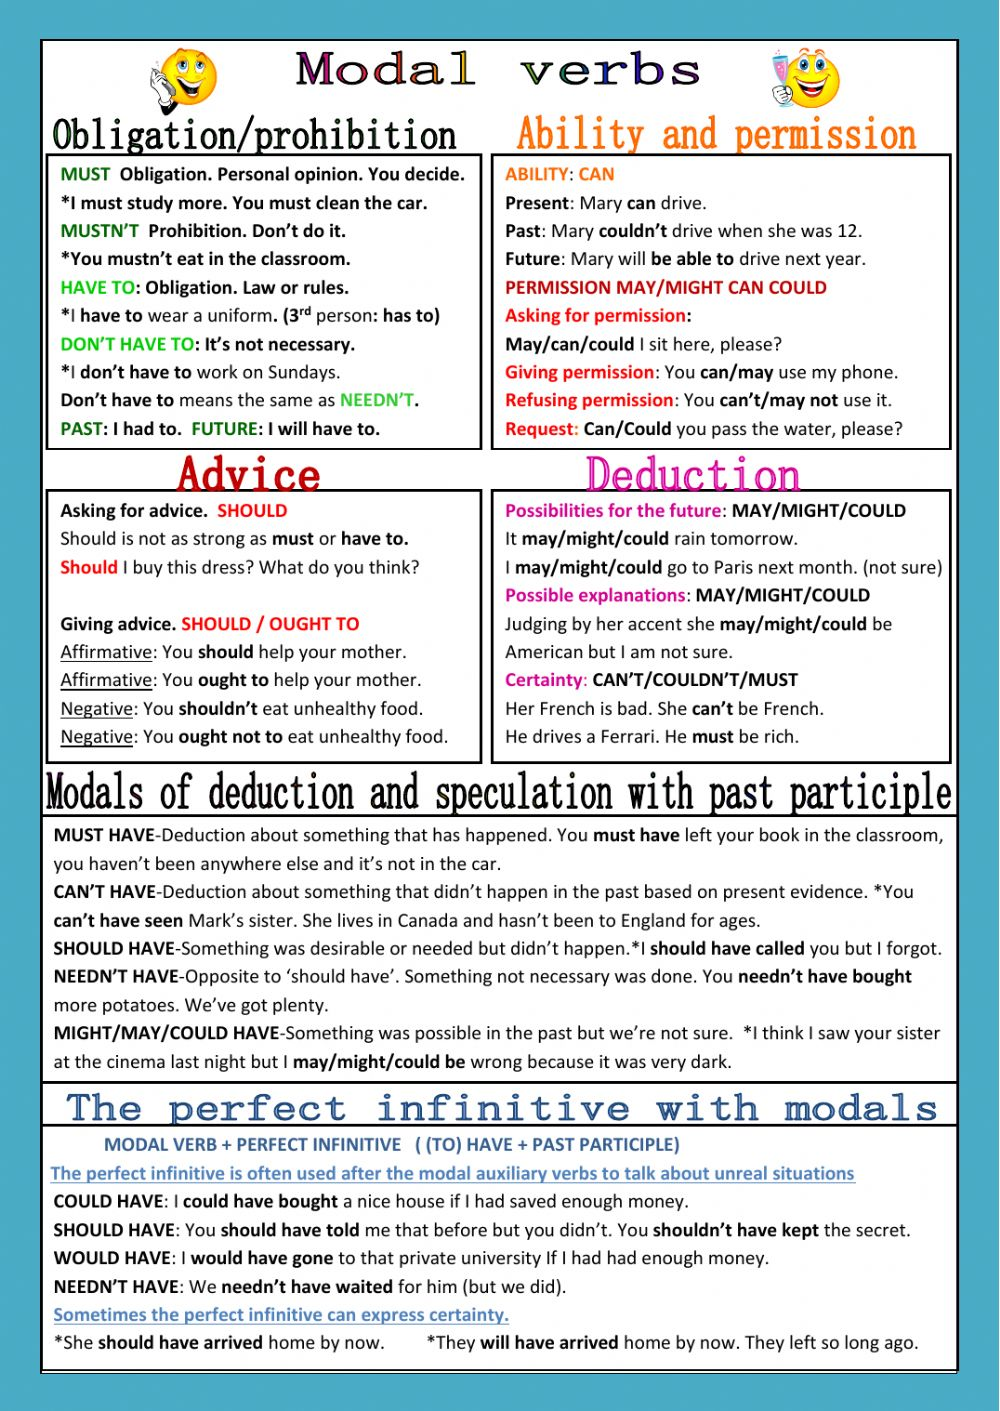 Modal Verbs Upper Intermediate Level Interactive Worksheet